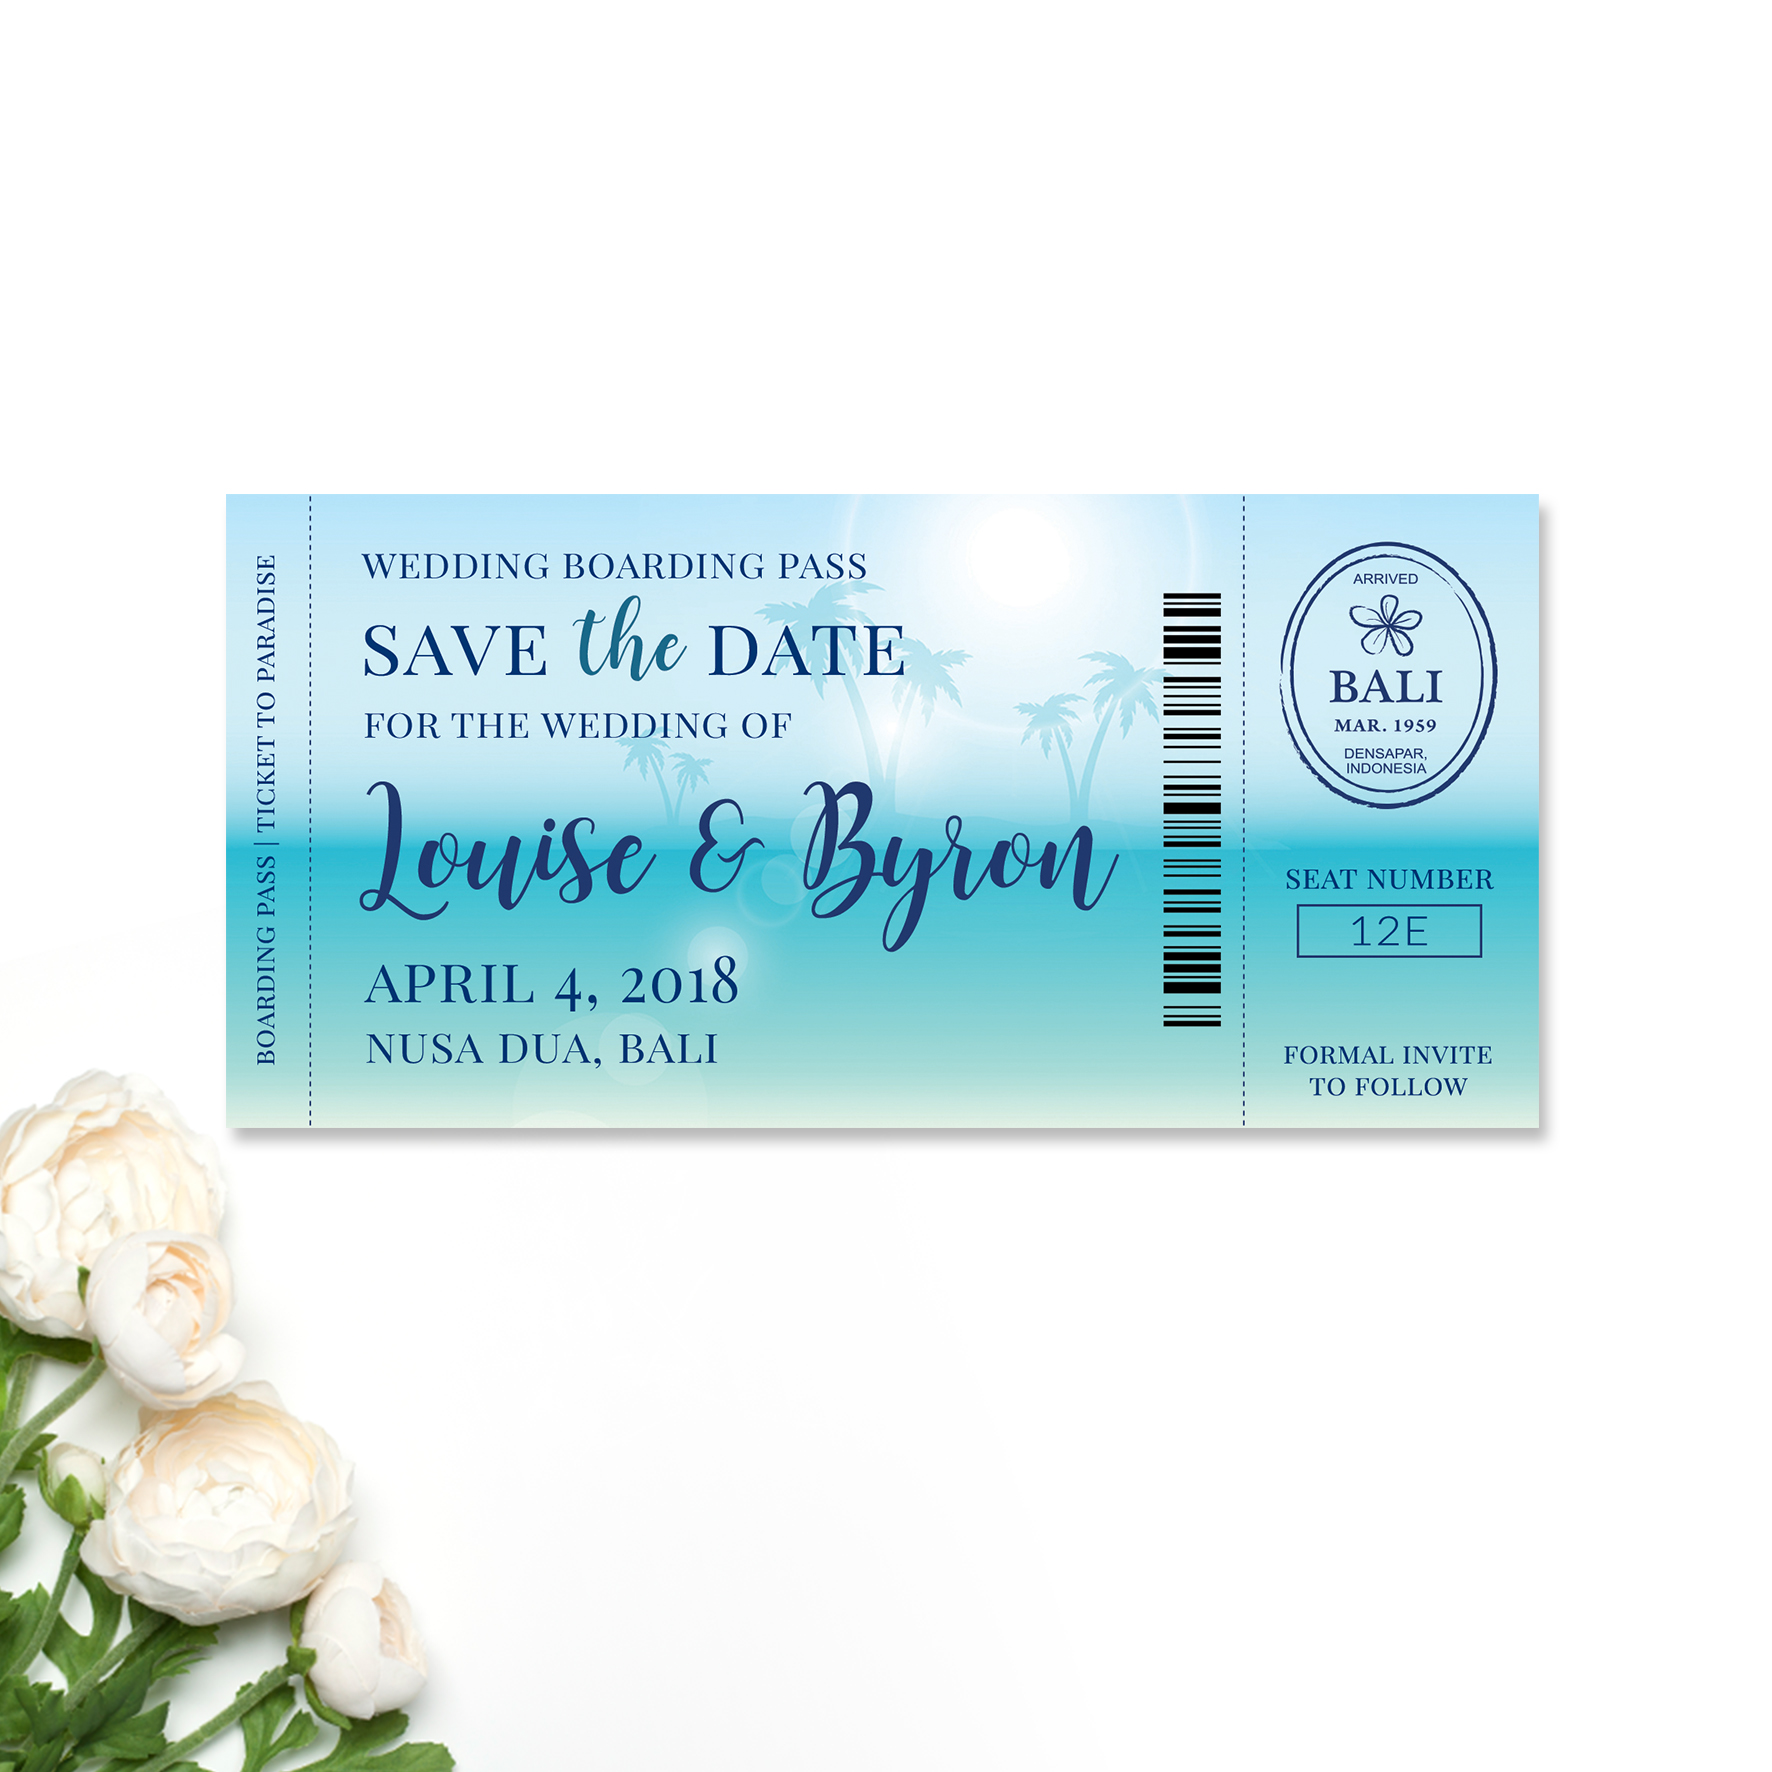 Louise + Bryan Save the Date Card